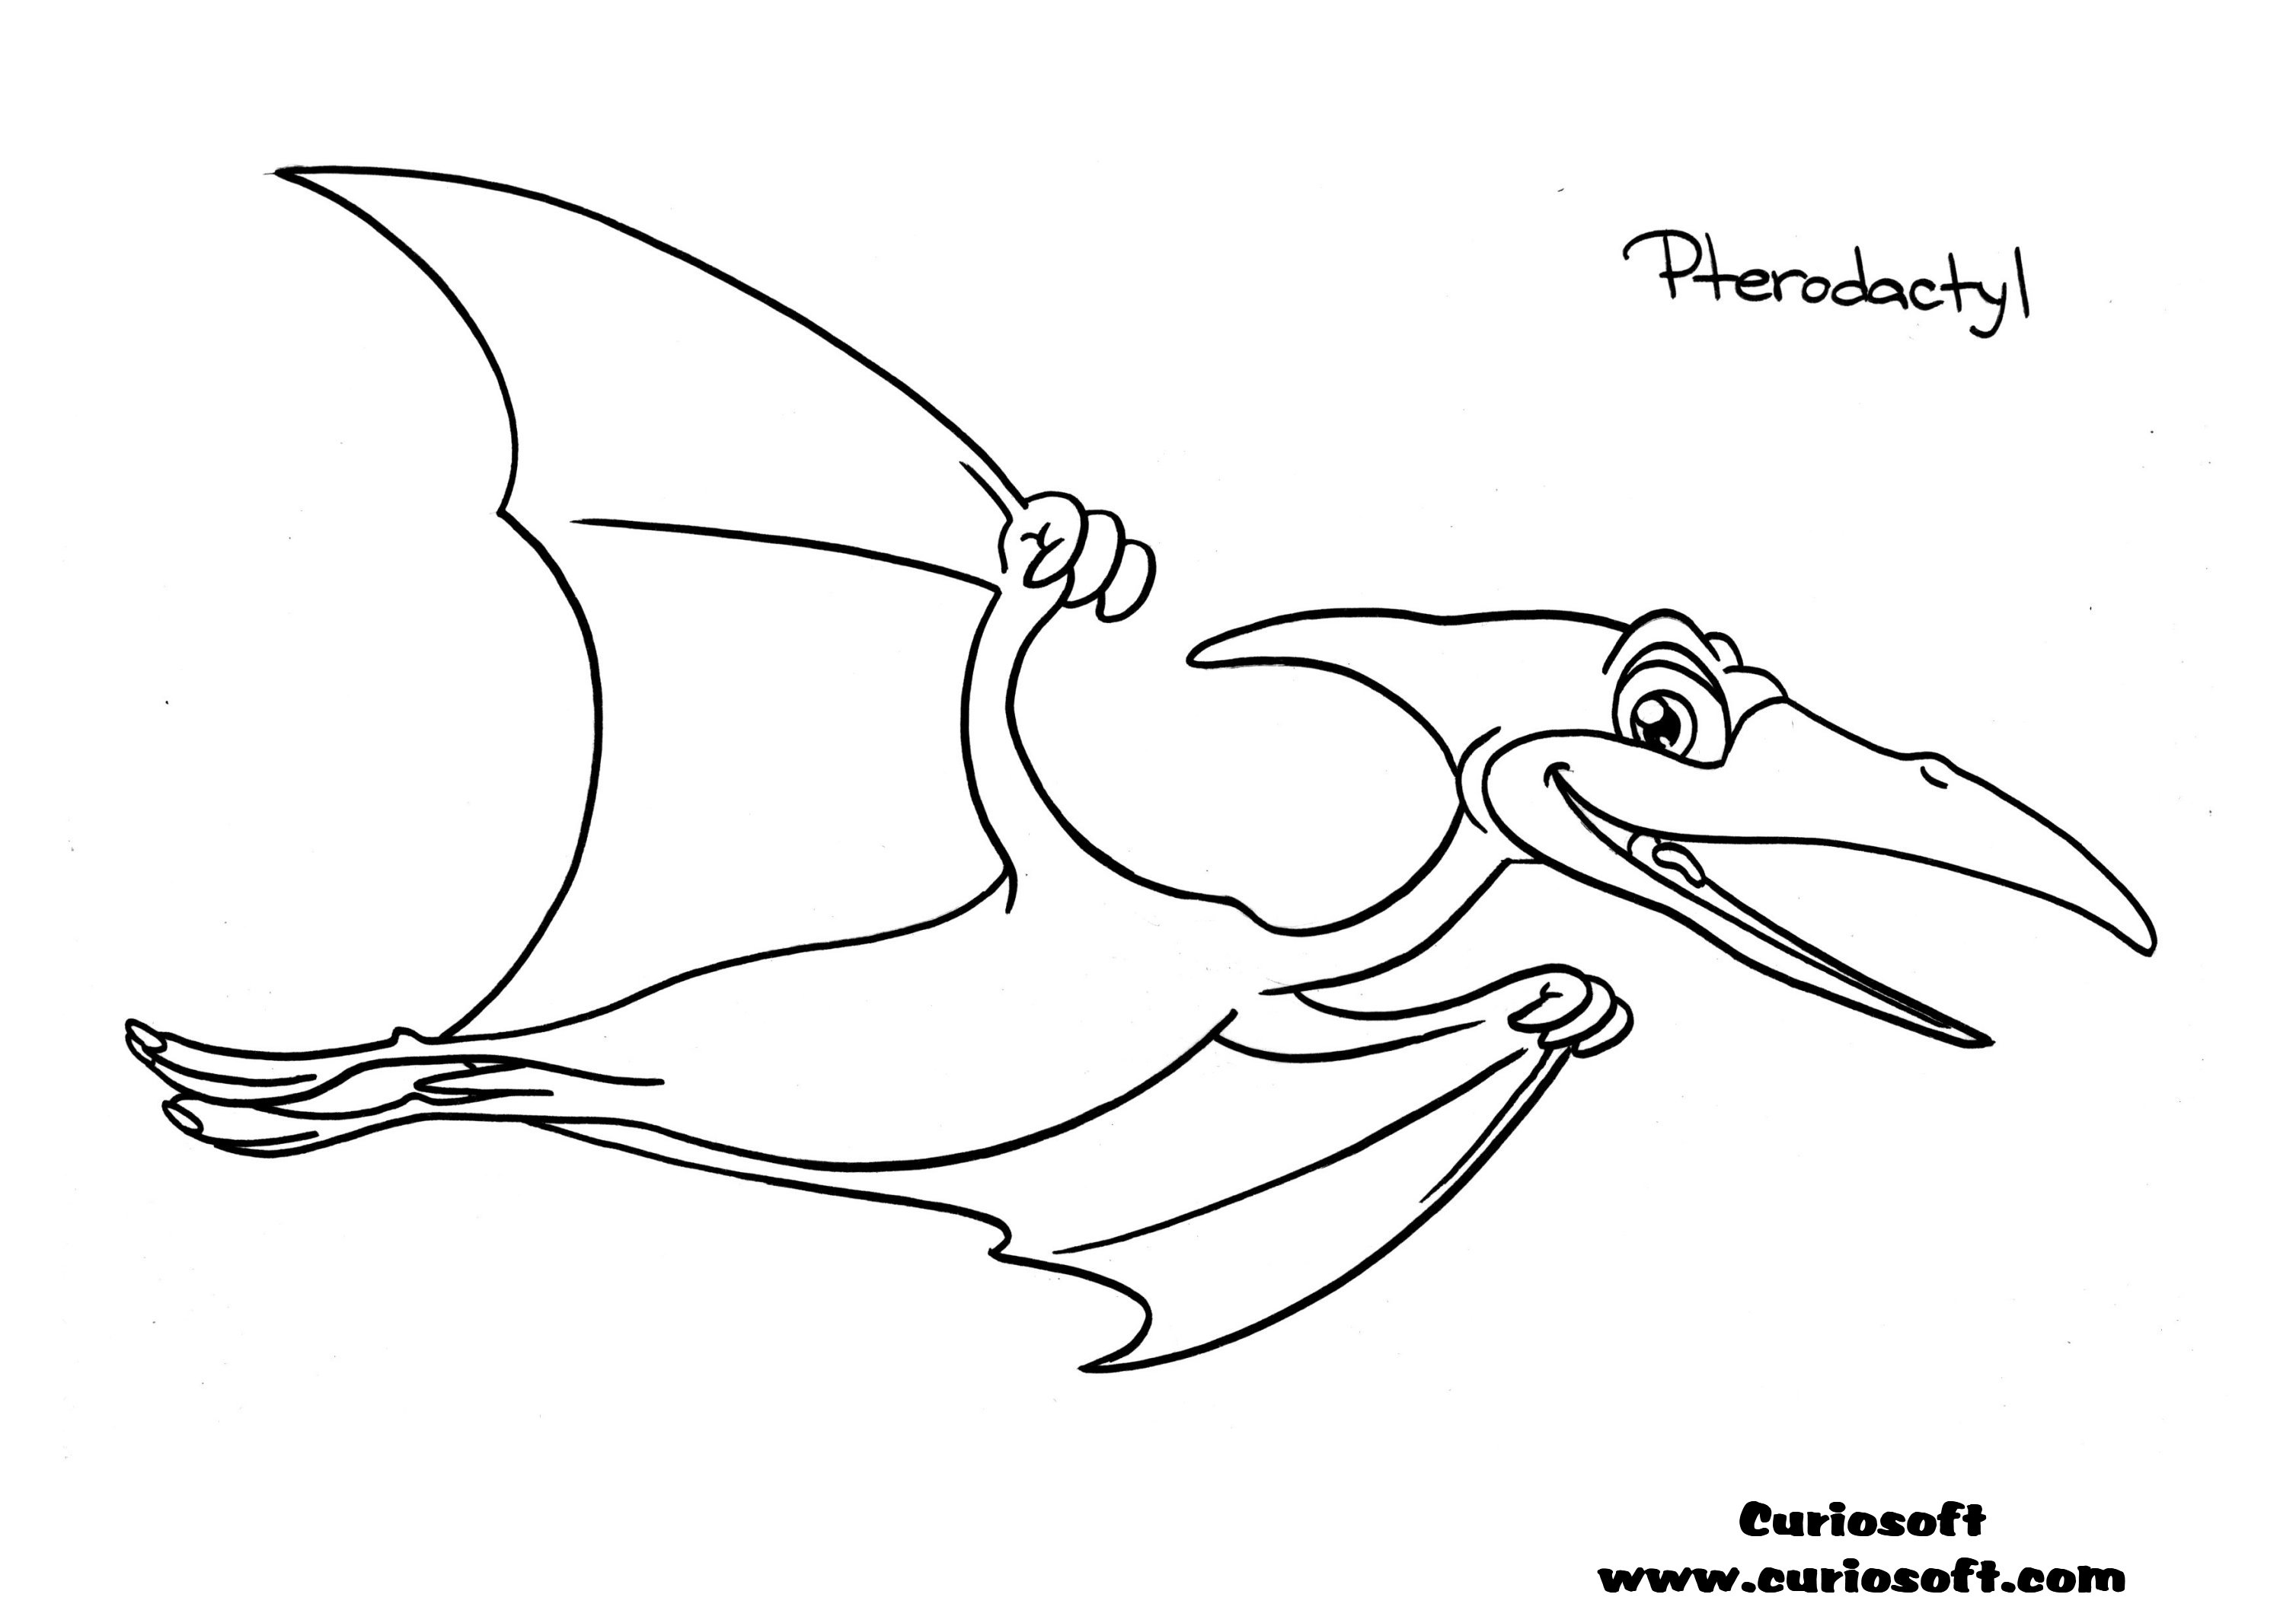 Adult Cute Pterodactyl Coloring Page Images beauty pterodactyl coloring pages dinosaurs pictures and facts free images